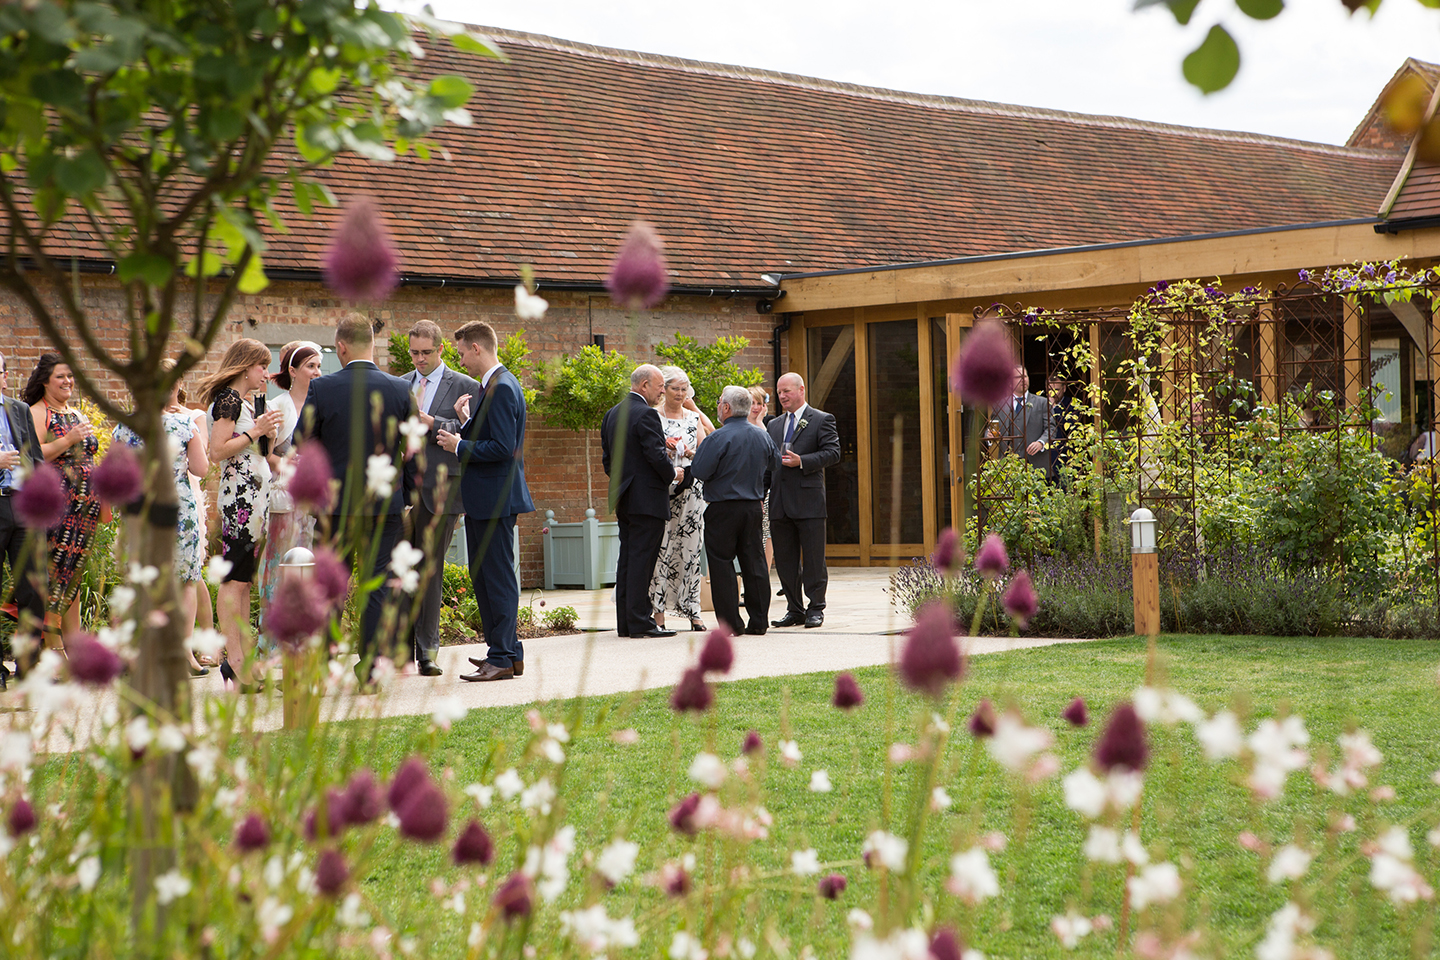 Guests enjoy a spring wedding drinks reception in the gardens at Bassmead Manor Barns